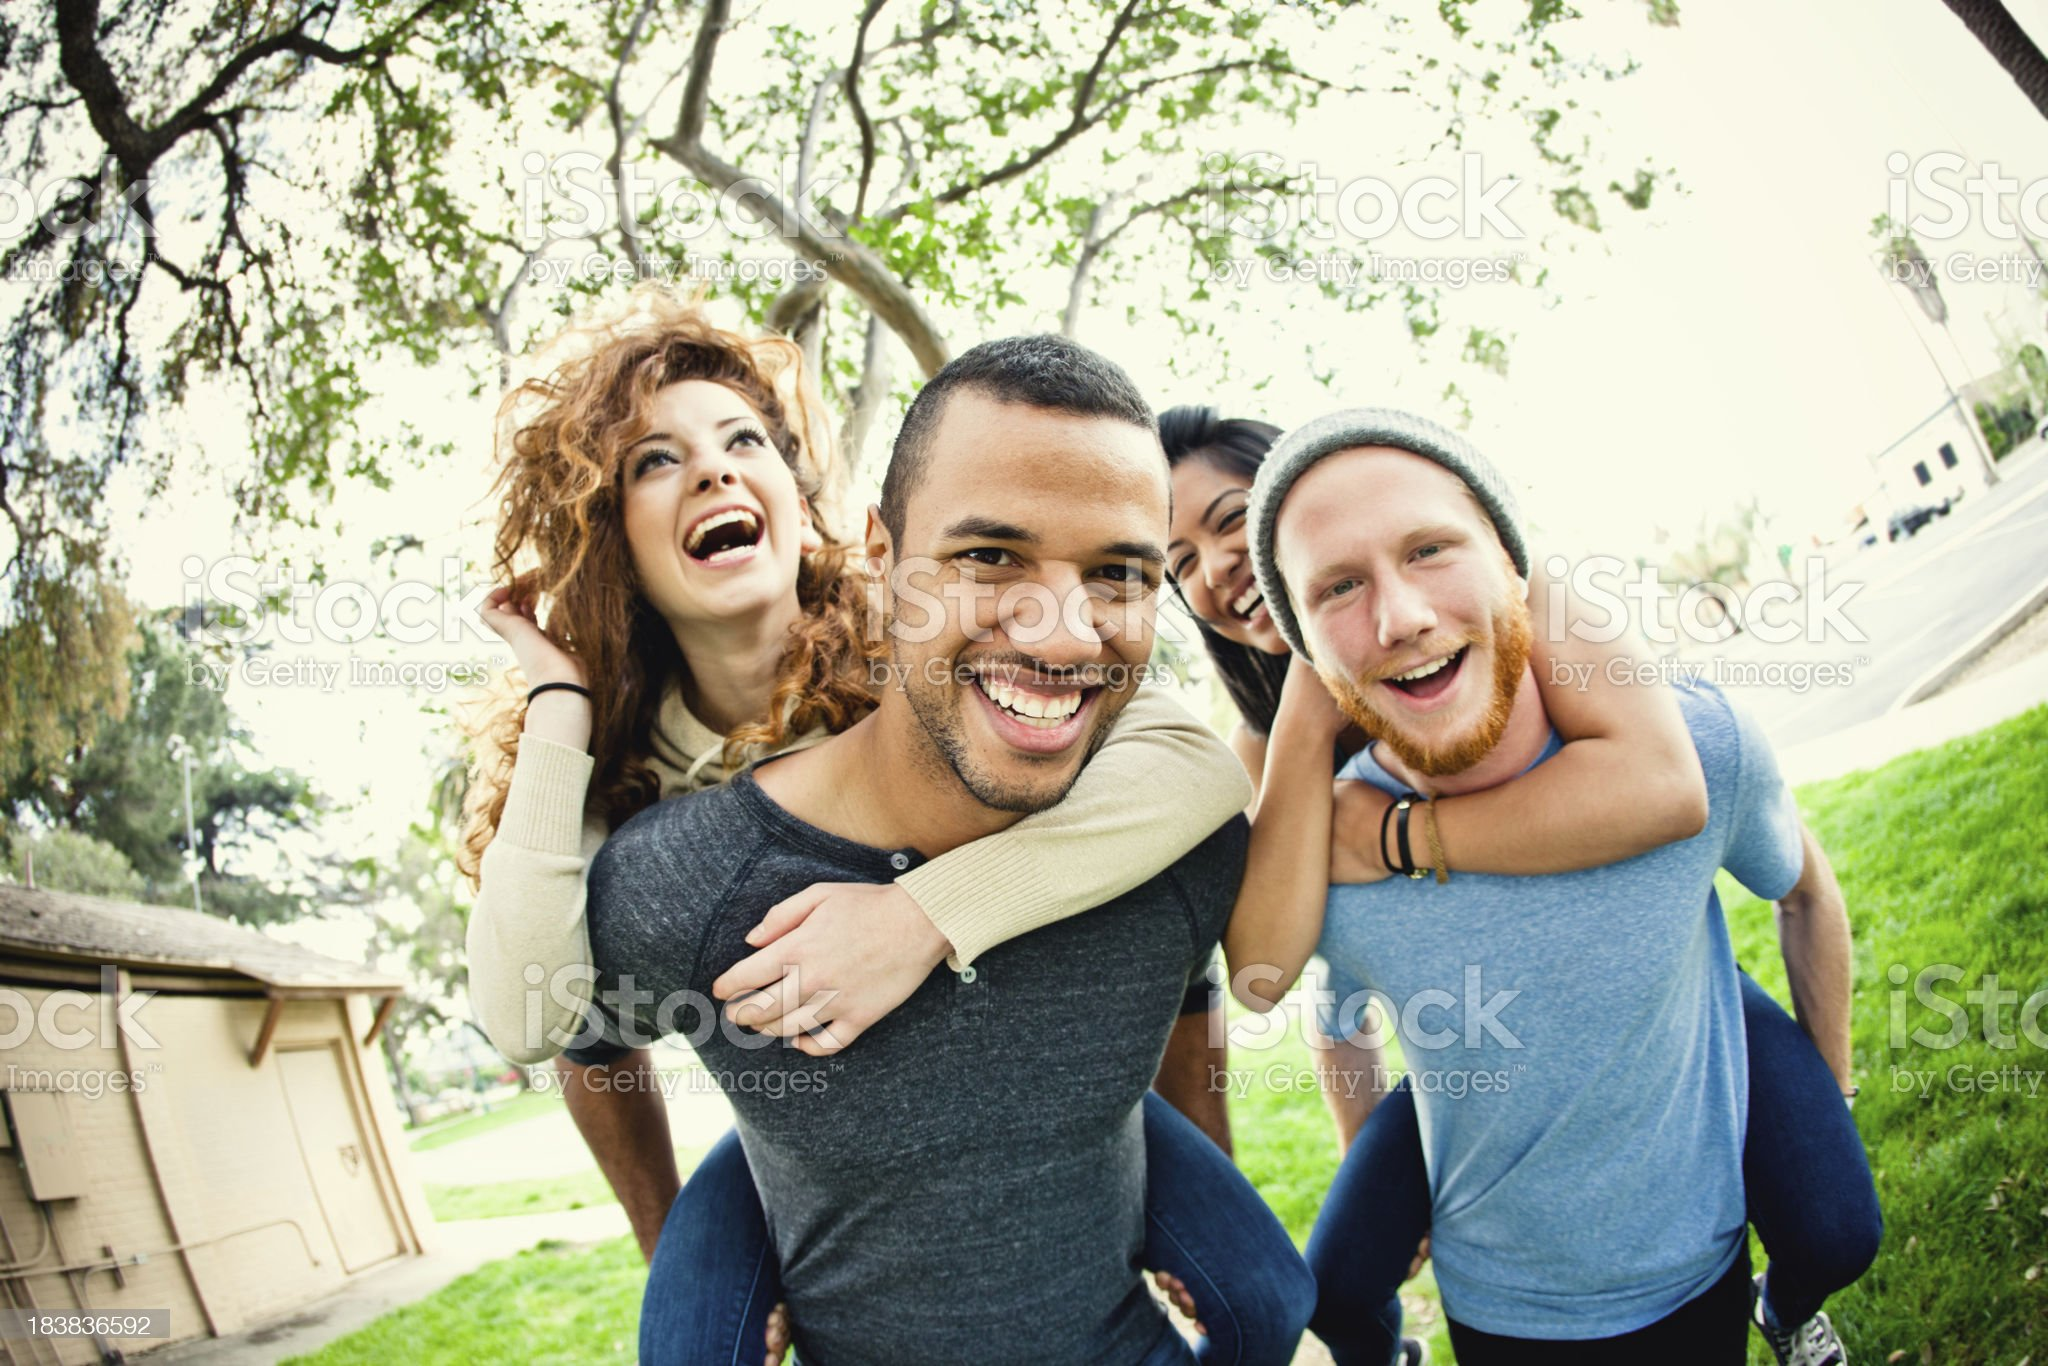 Teens running and girls on the boys backs laughing royalty-free stock photo